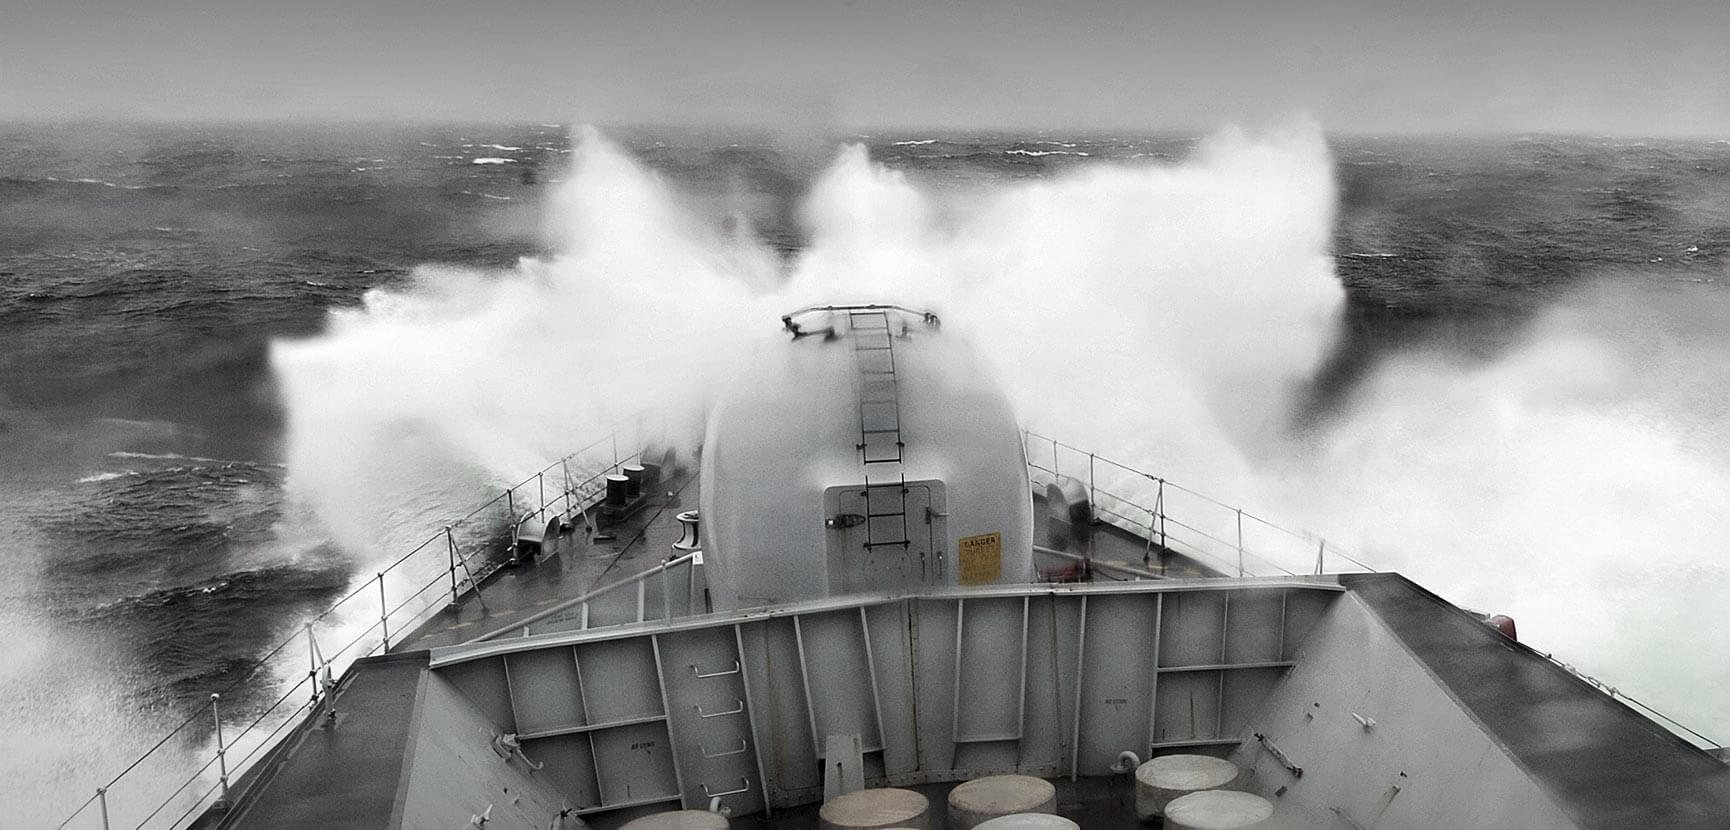 Cutting more frigates? The Royal Navy facing a 'perfect storm'